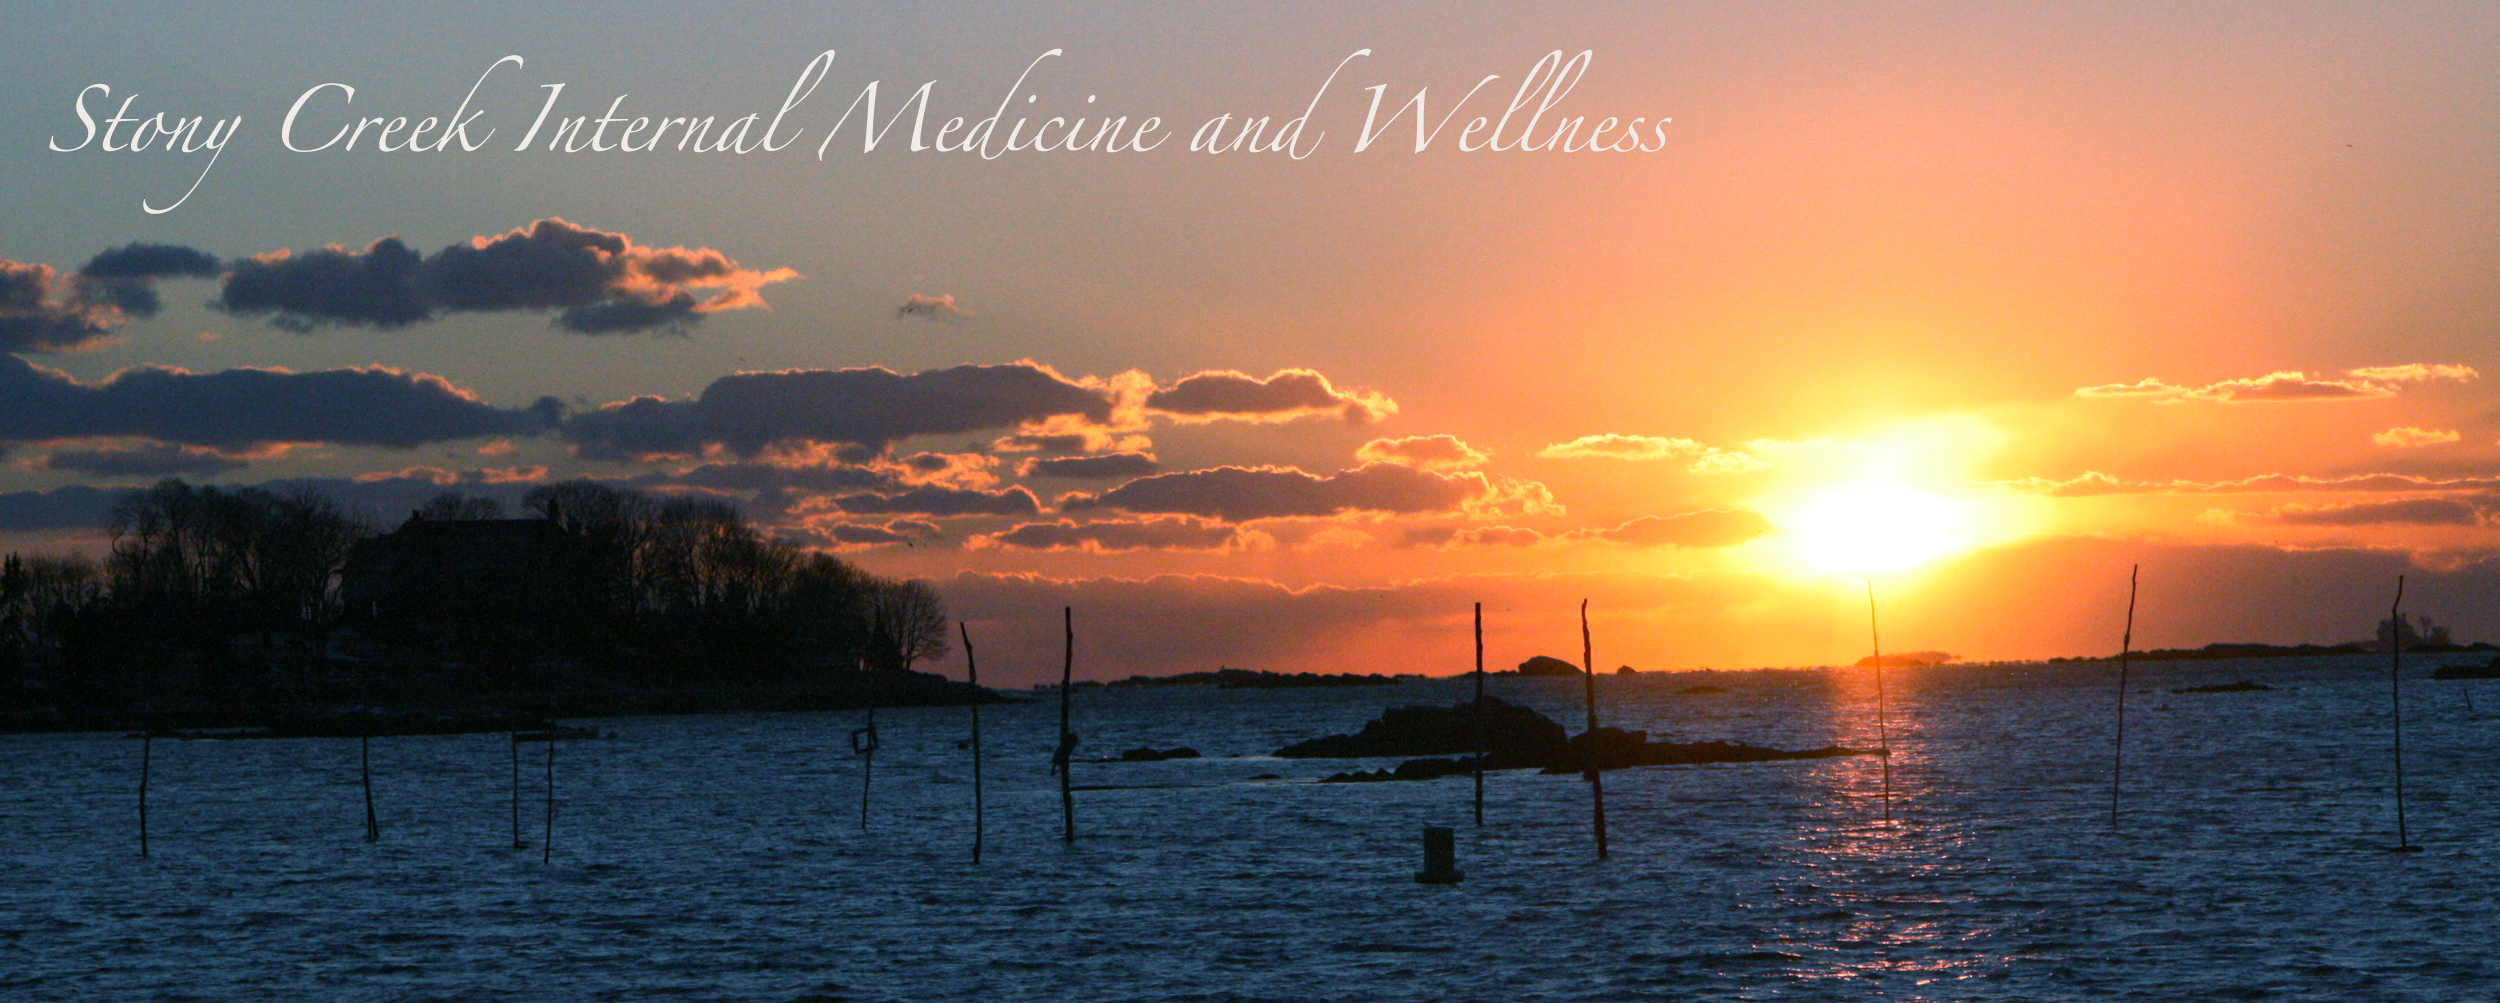 Stony Creek Internal Medicine and Wellness